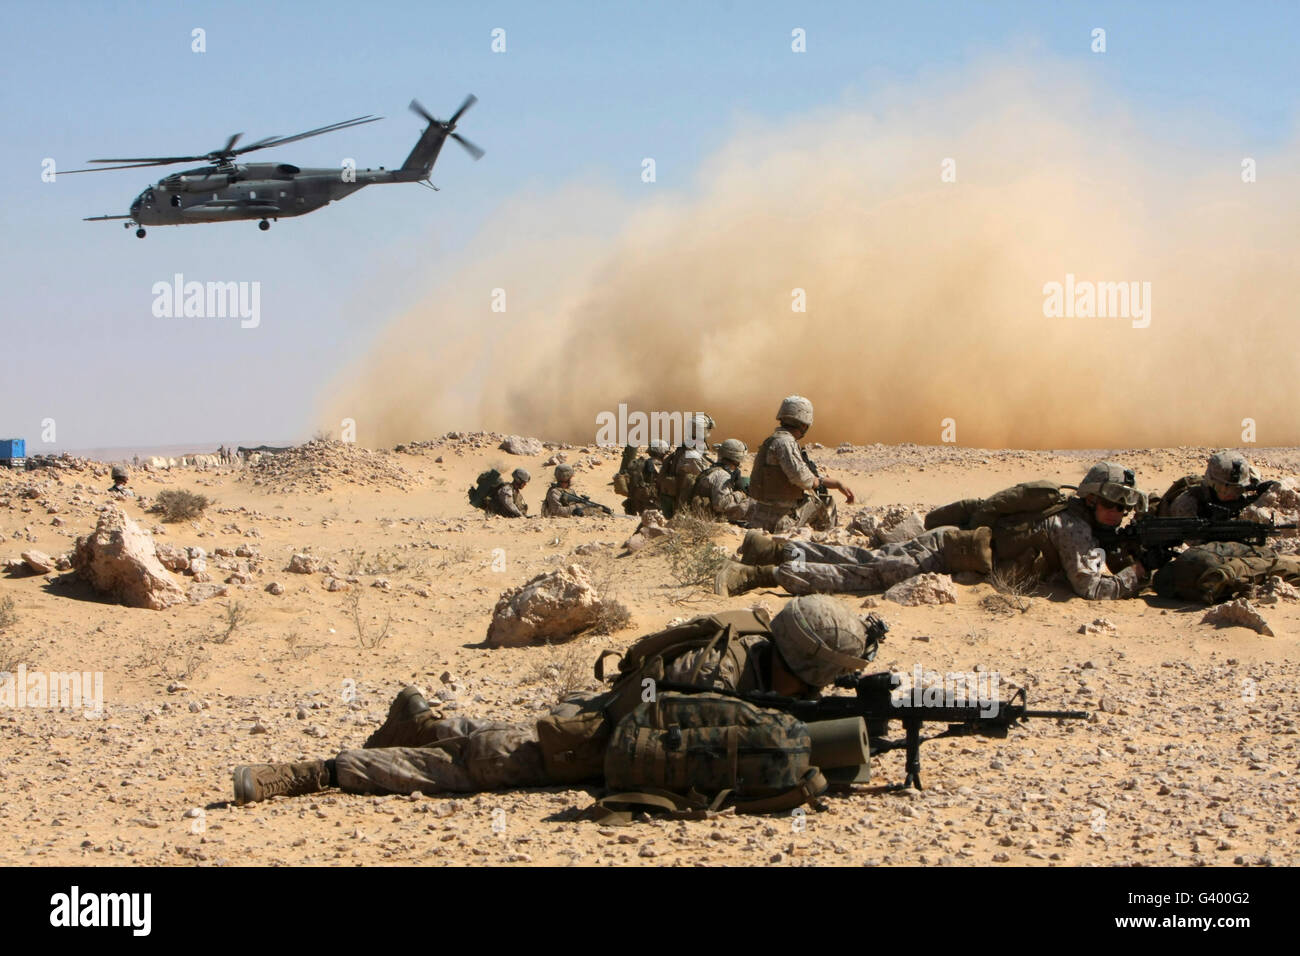 Marines set up security in Egypt as a CH-53E Super Stallion takes off. - Stock Image